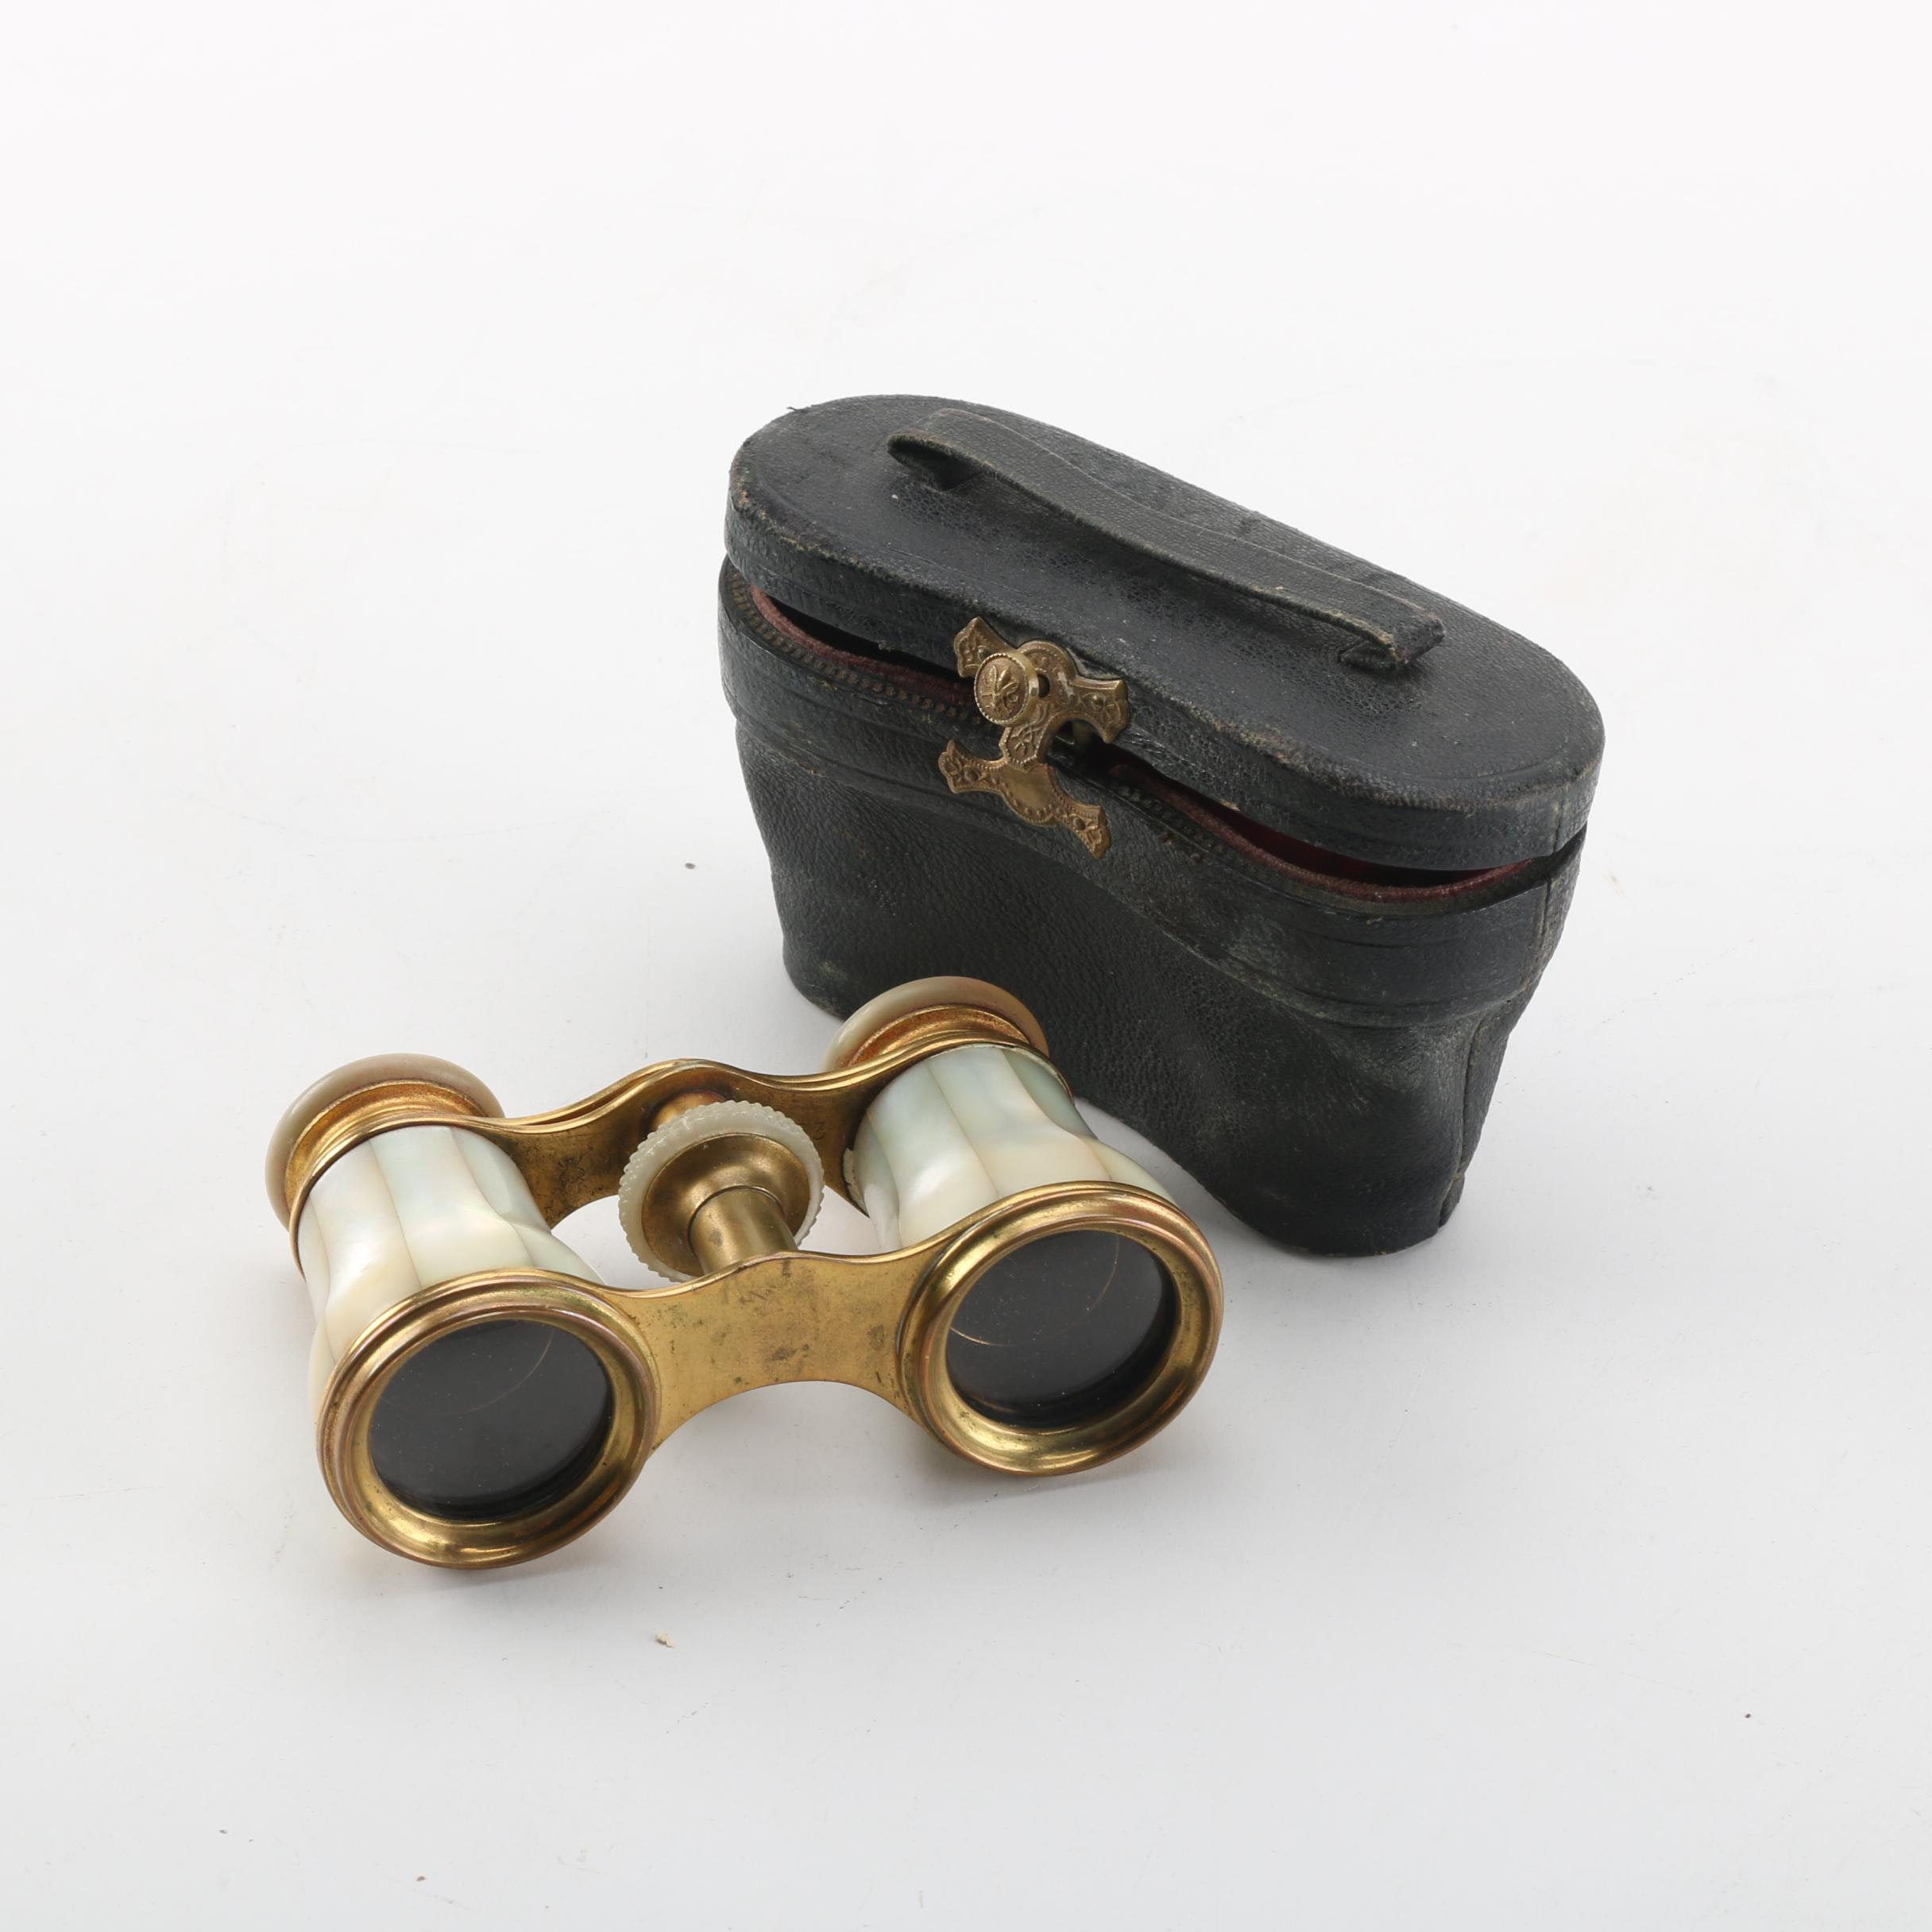 Mother of Pearl Opera Glasses with Leather Case